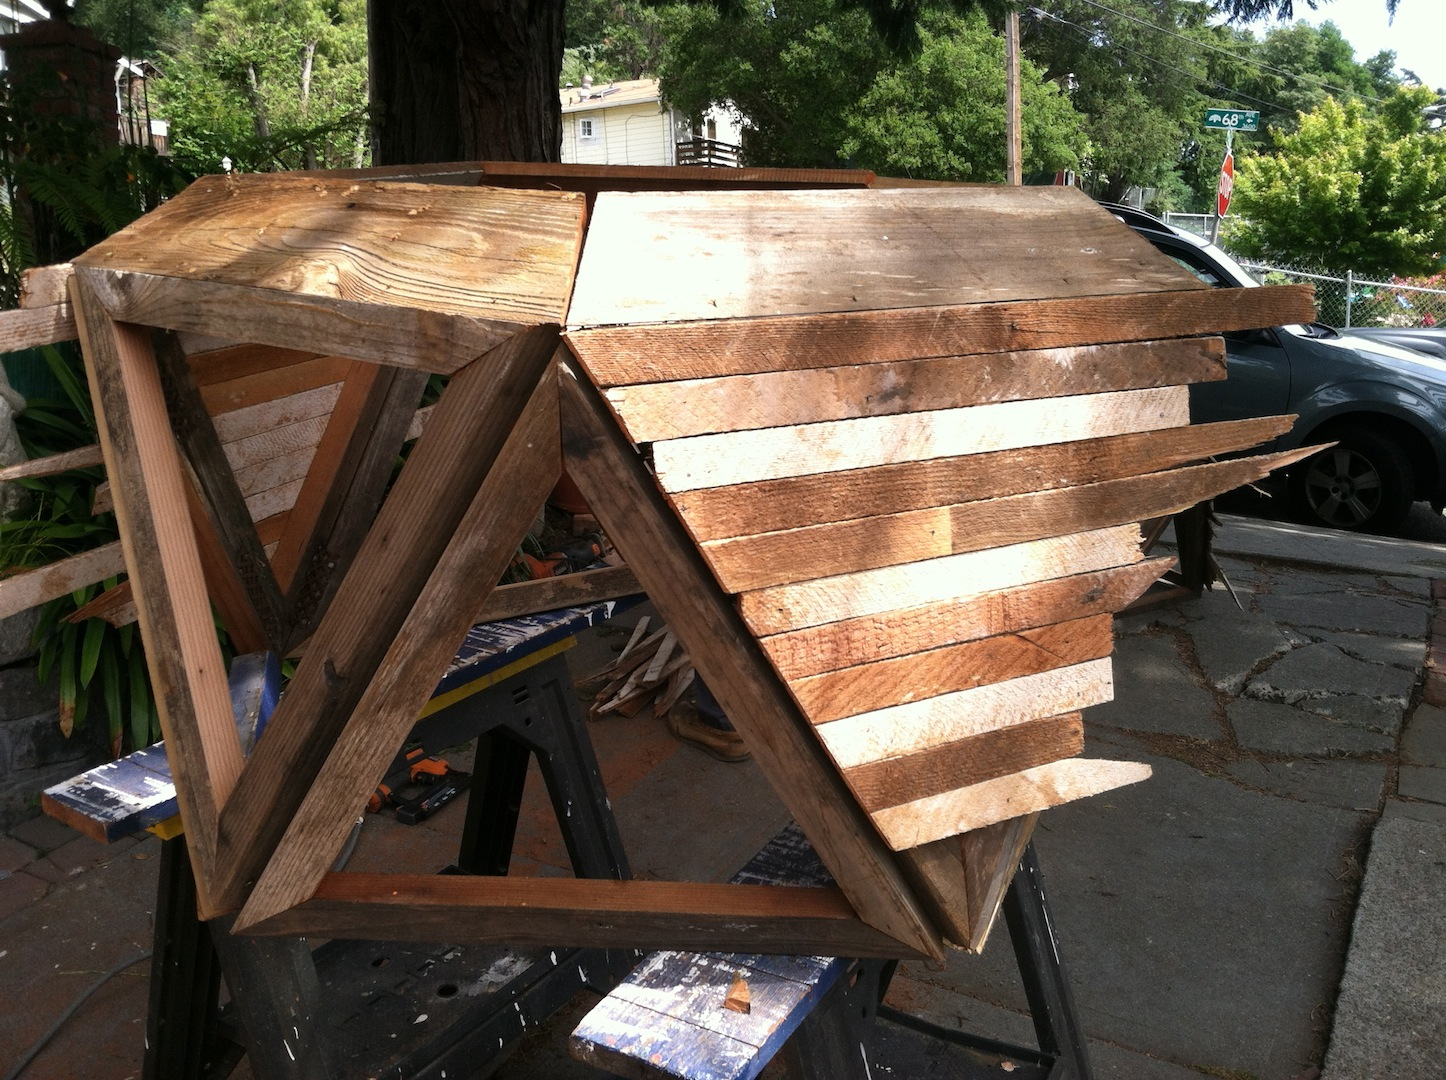 Beginning of the Ombre planter with woos lath generously donated by Howard of Renovate SF. Thank you Howard.